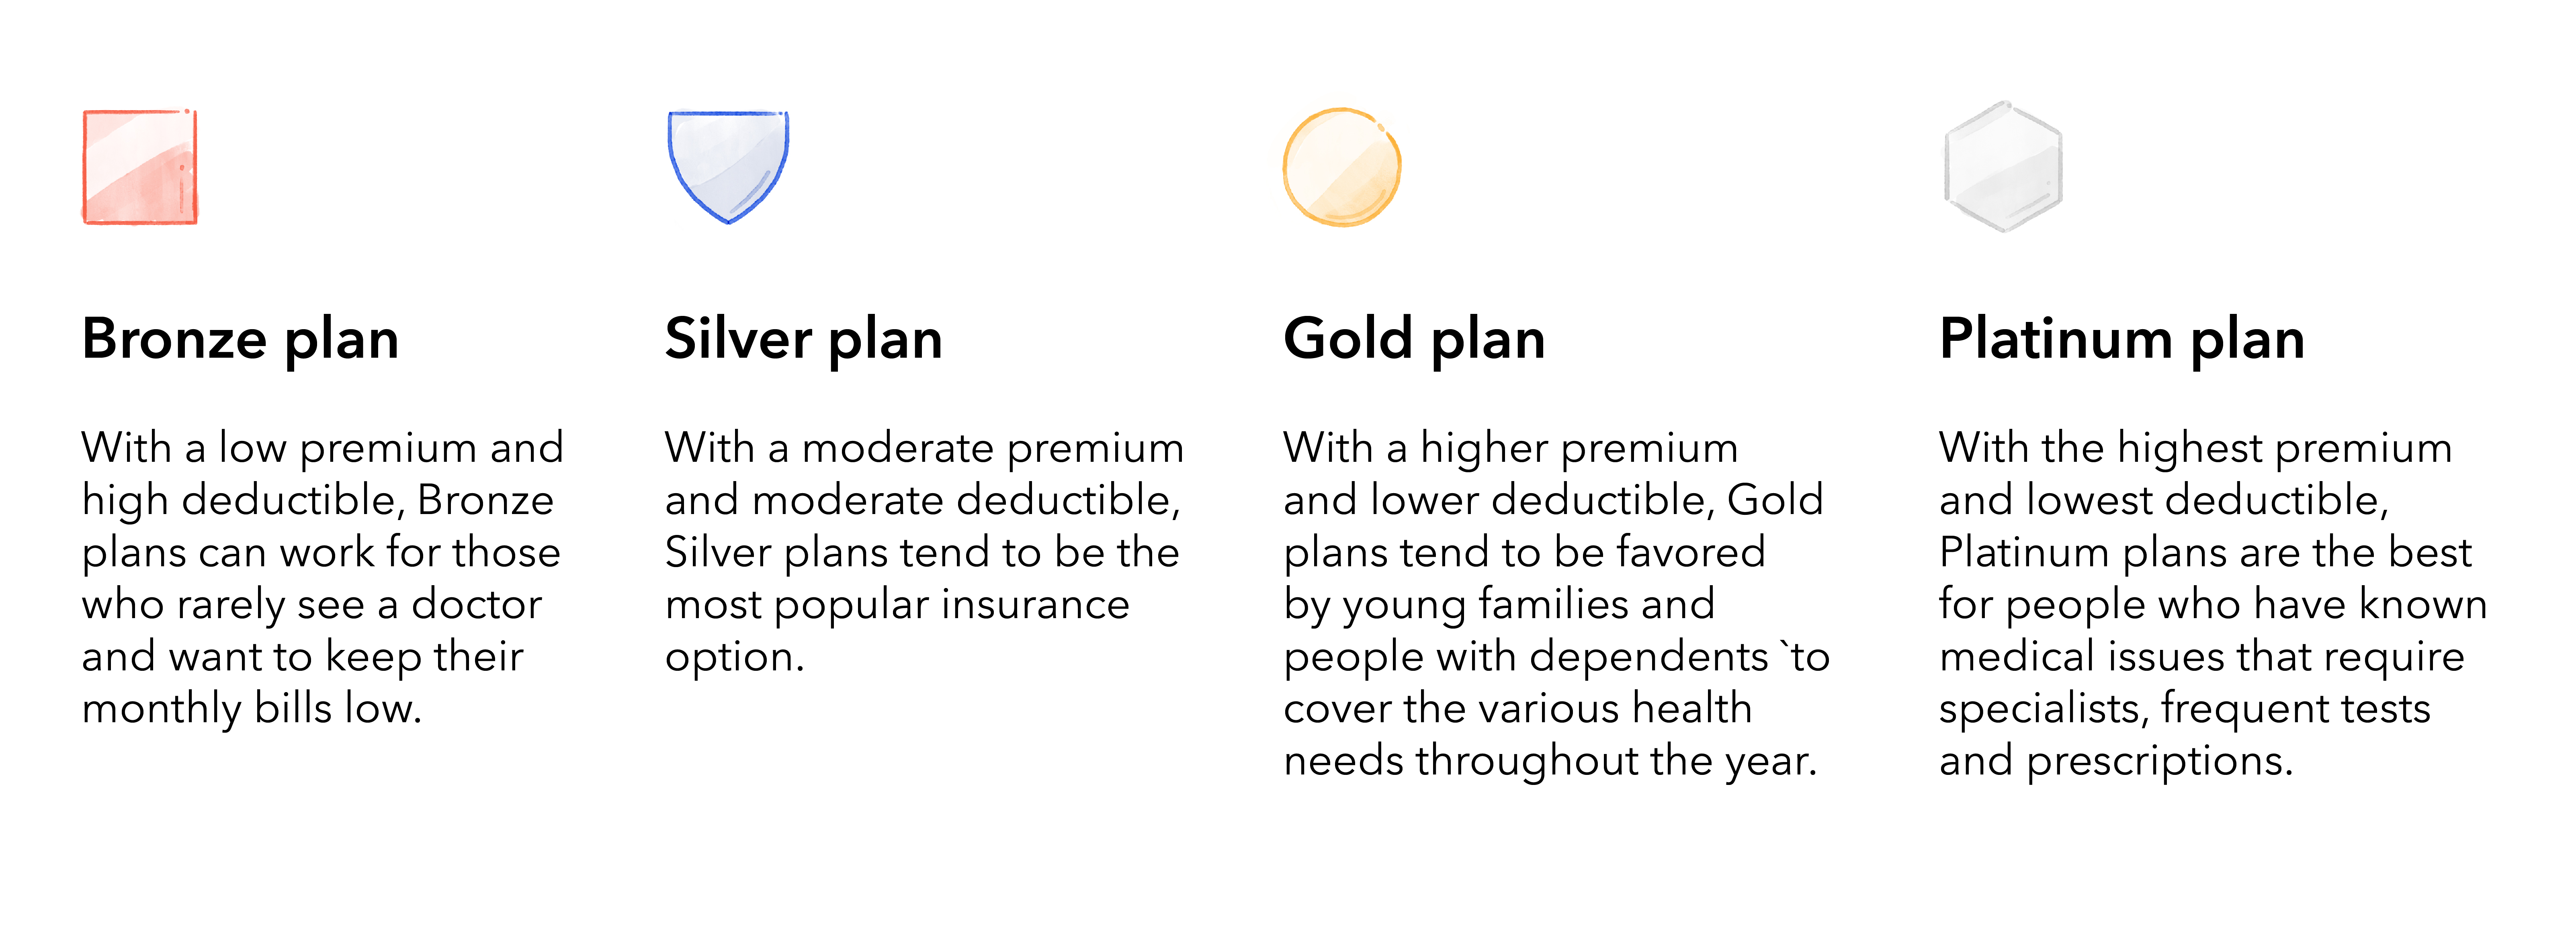 Buying health insurance? Here are 6 questions you should ask